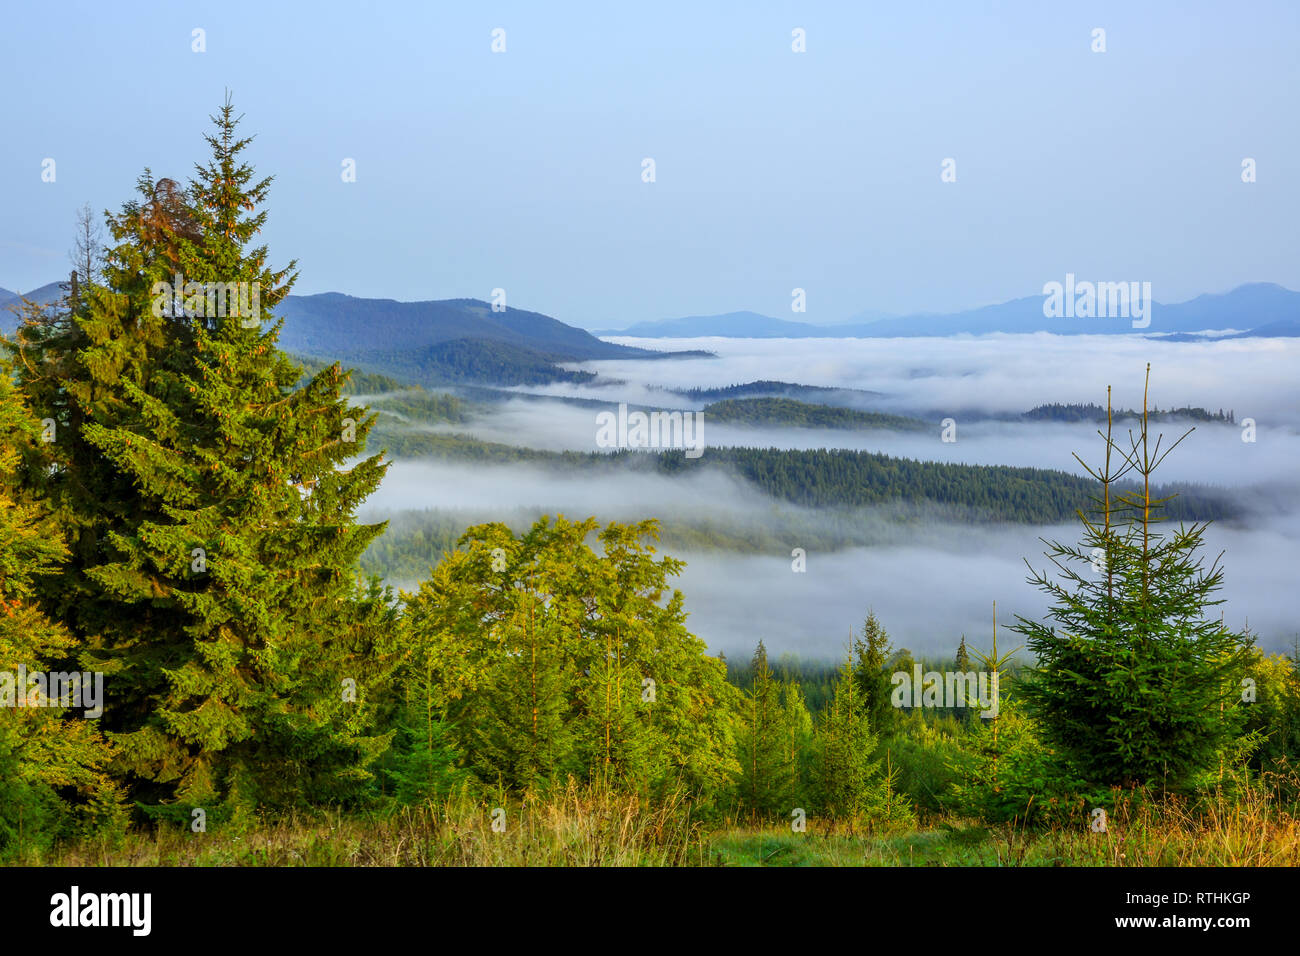 Cloudless morning over the wooded mountains. Bright green grass and spruces in the foreground. Fog in the valley - Stock Image